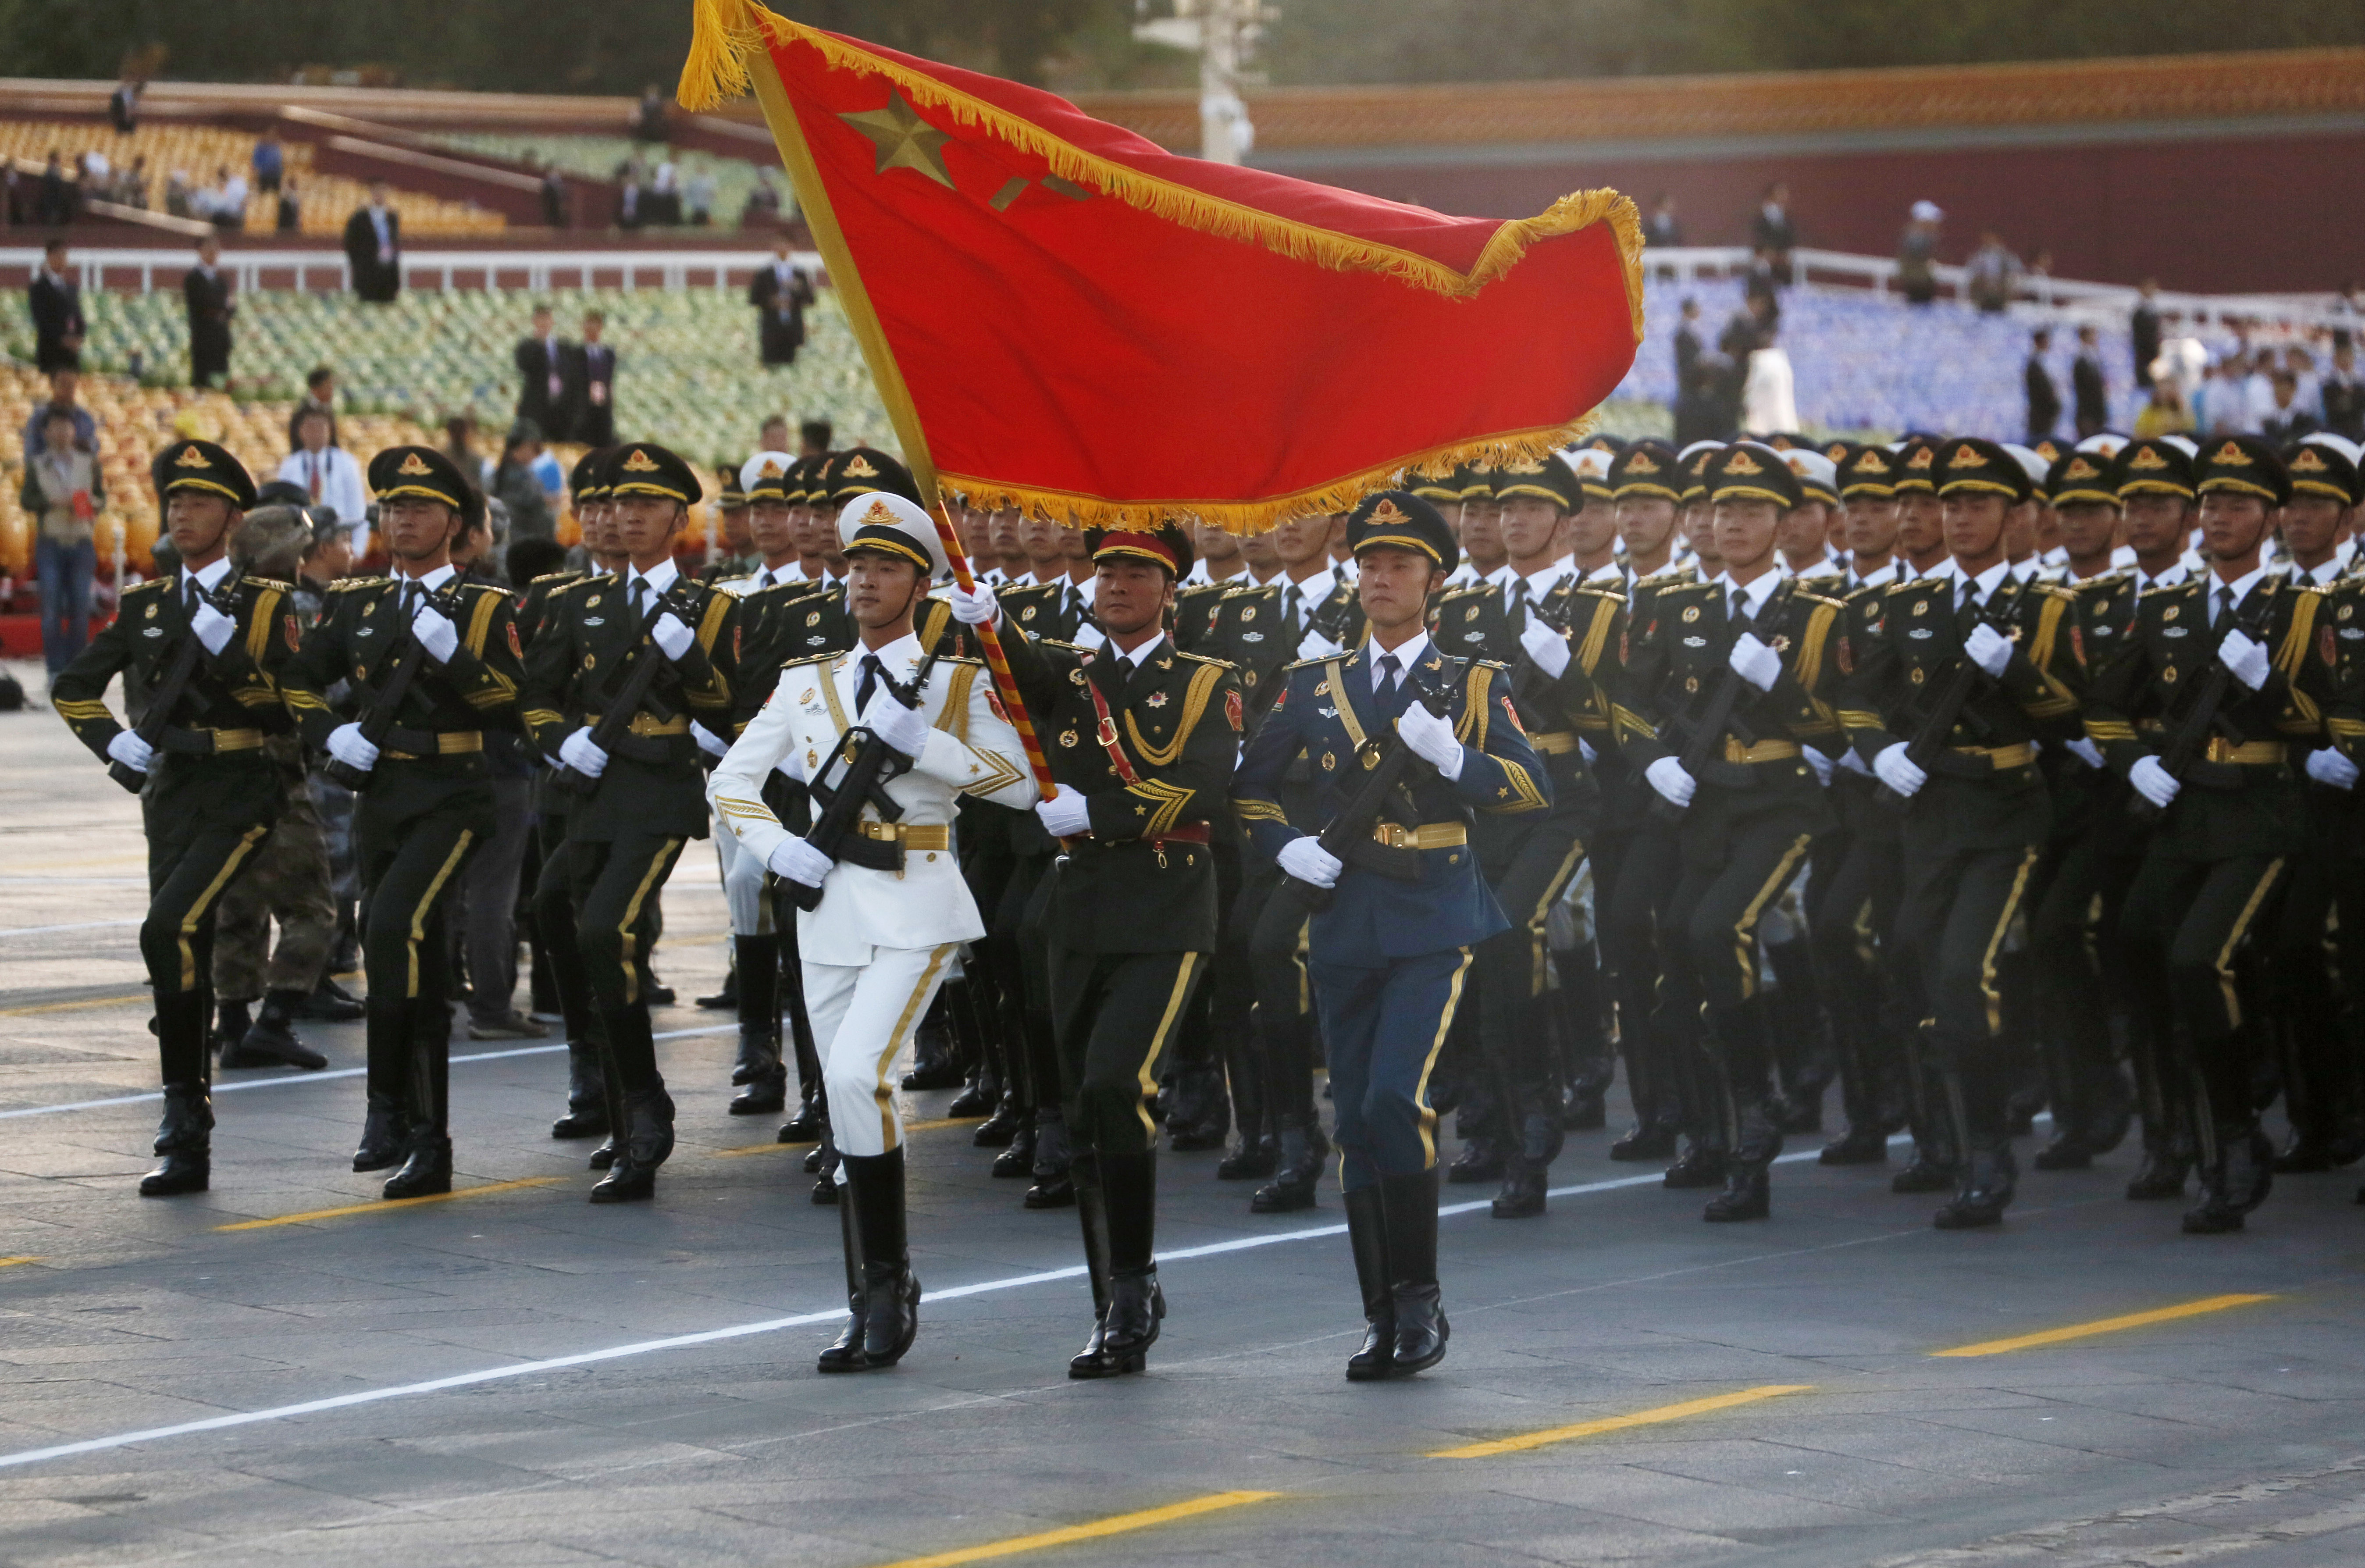 Chinese military personnel march into position ahead of a military parade commemorating the 70th anniversary of Japan's surrender during World War II held in front of Tiananmen Gate in Beijing, Thursday, Sept. 3, 2015. Photo: AP